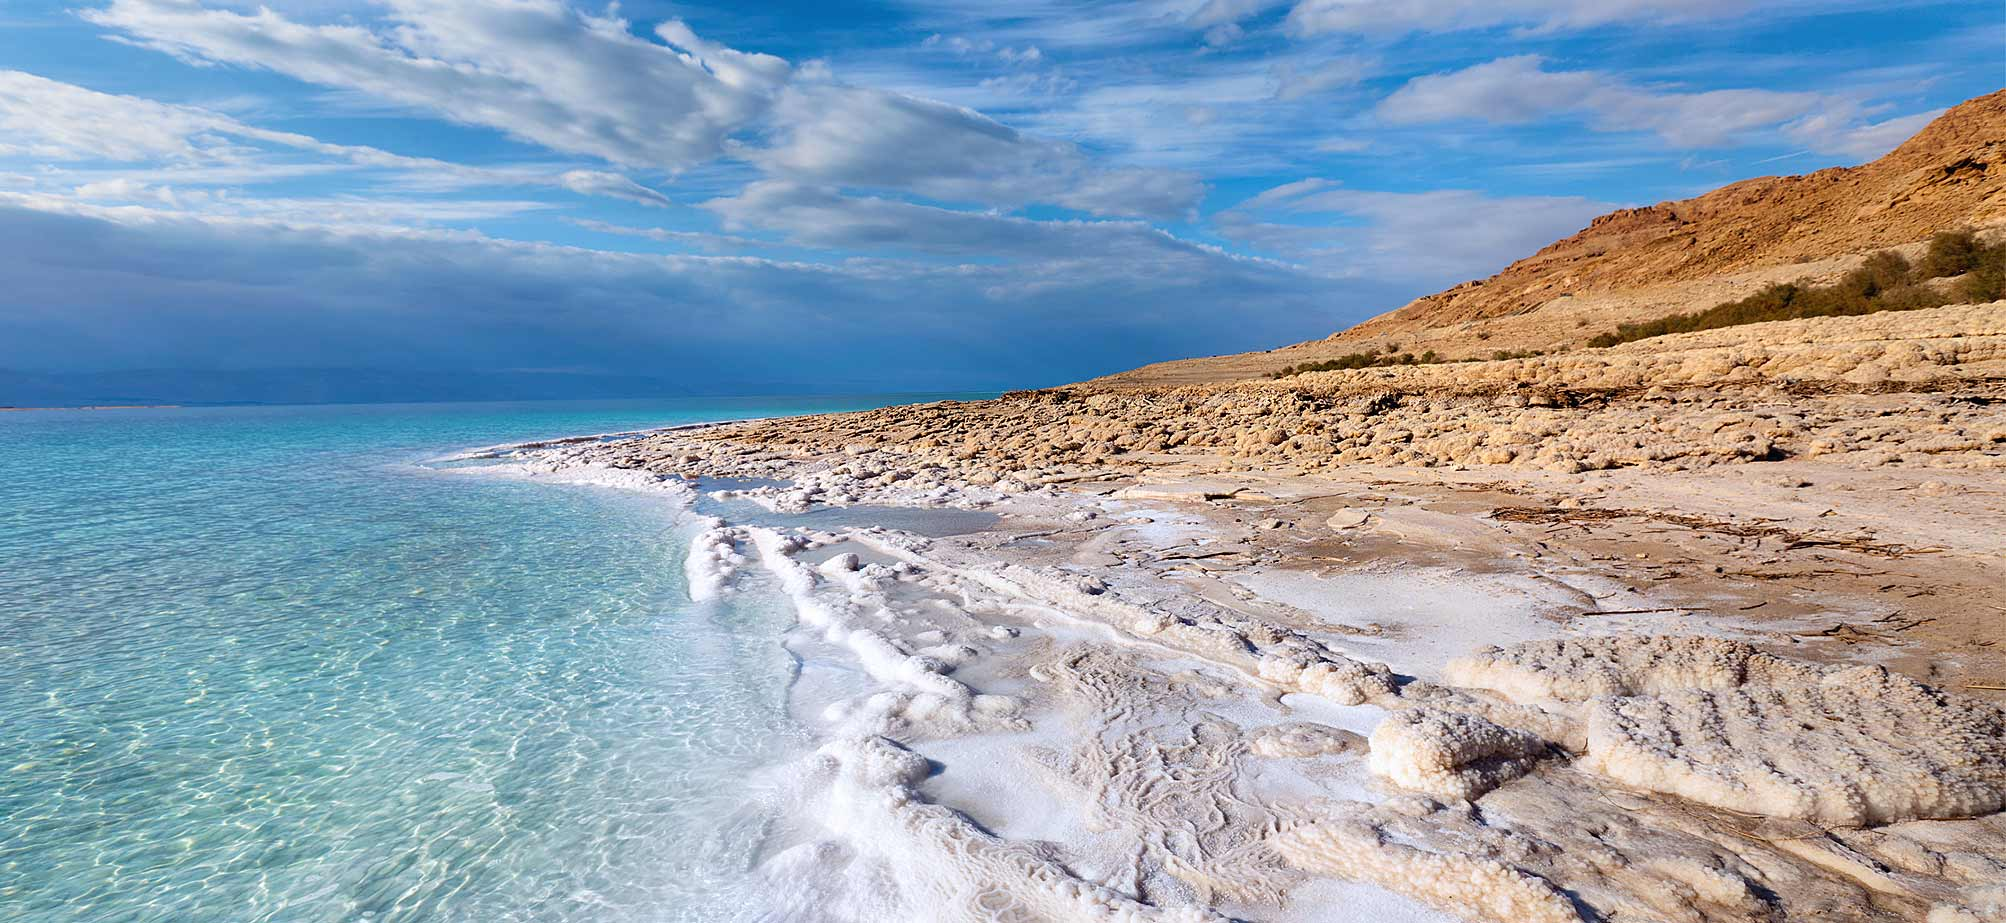 Image result for The Dead Sea in jordan